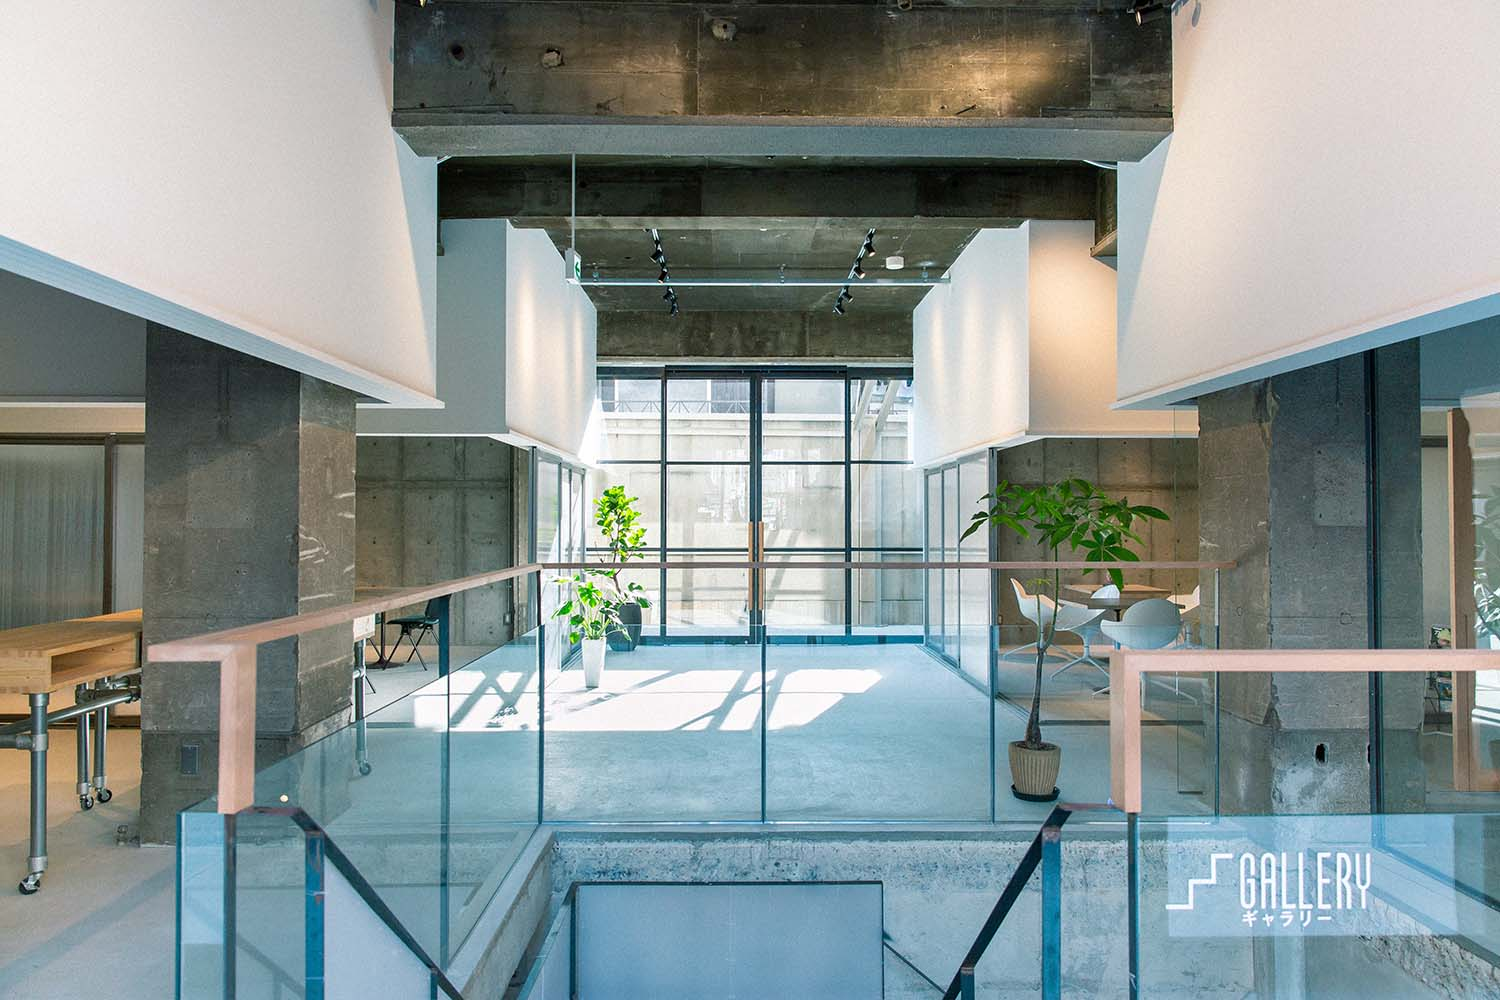 KAGANHOTEL Kyoto Coworking Co-living Artists Residence Hotel Concept